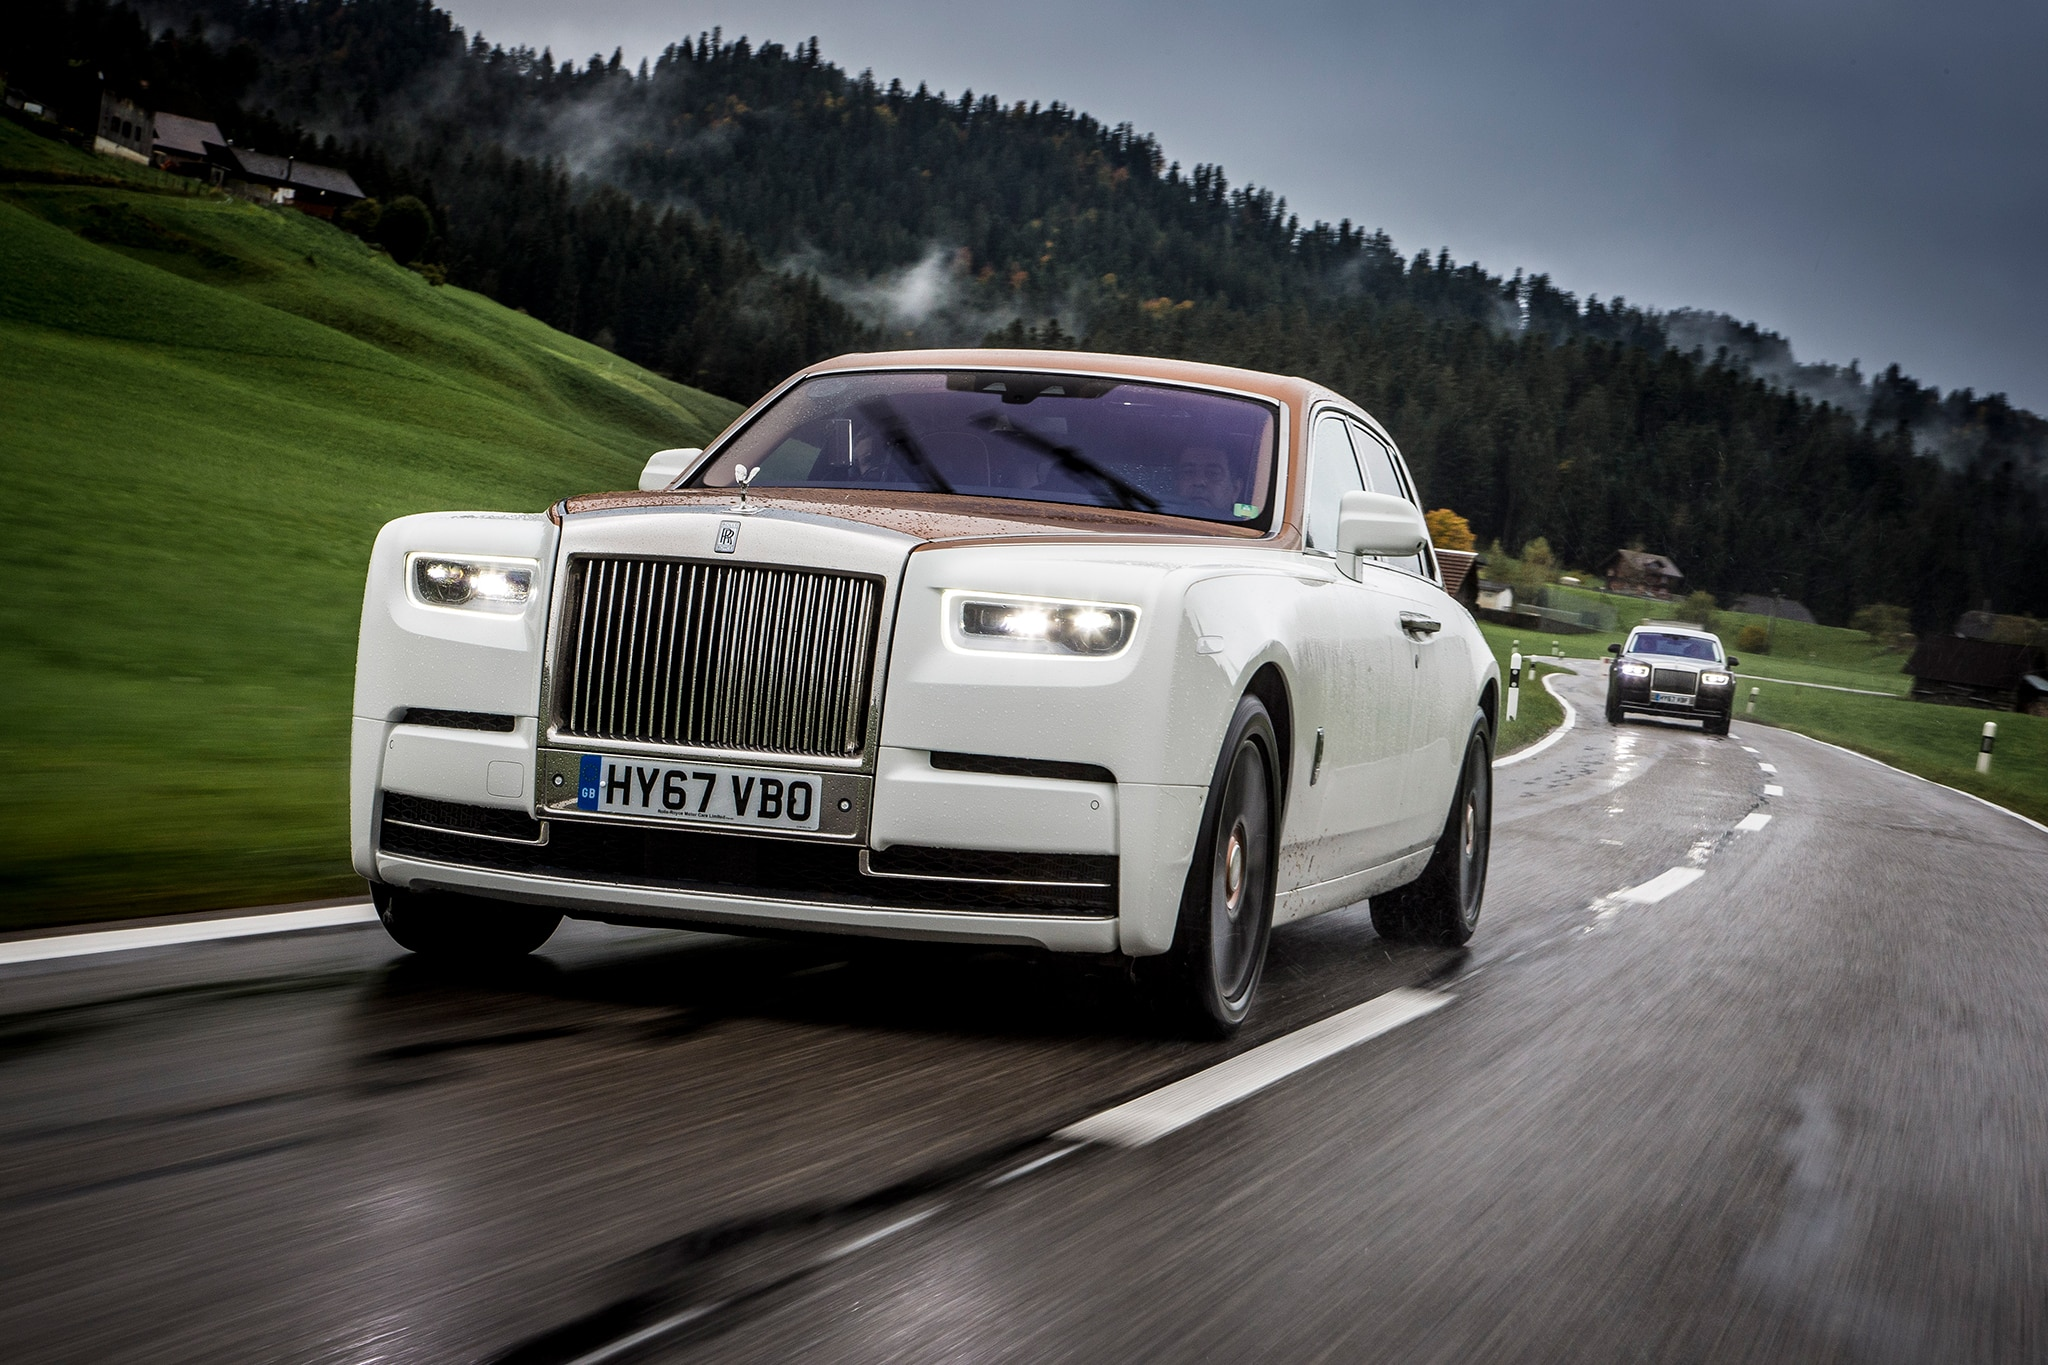 d2f6f187464 2018 Rolls-Royce Phantom First Drive Review